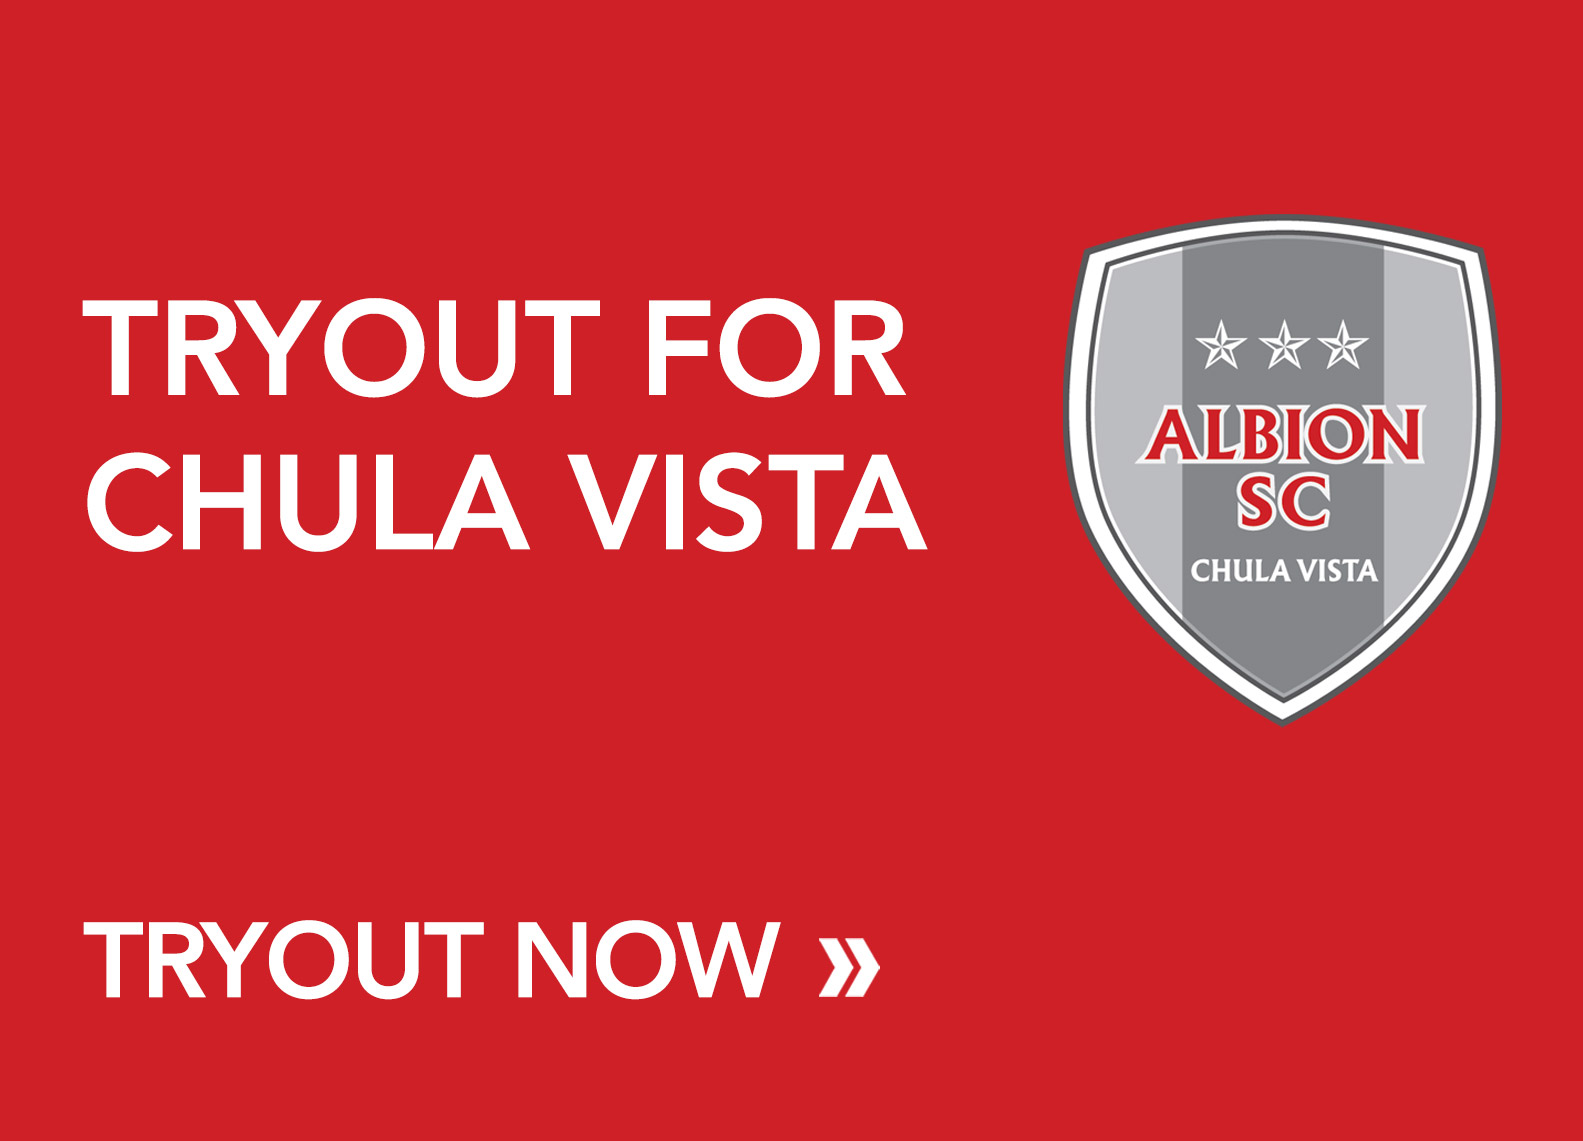 Tryout ALBION Chula Vista